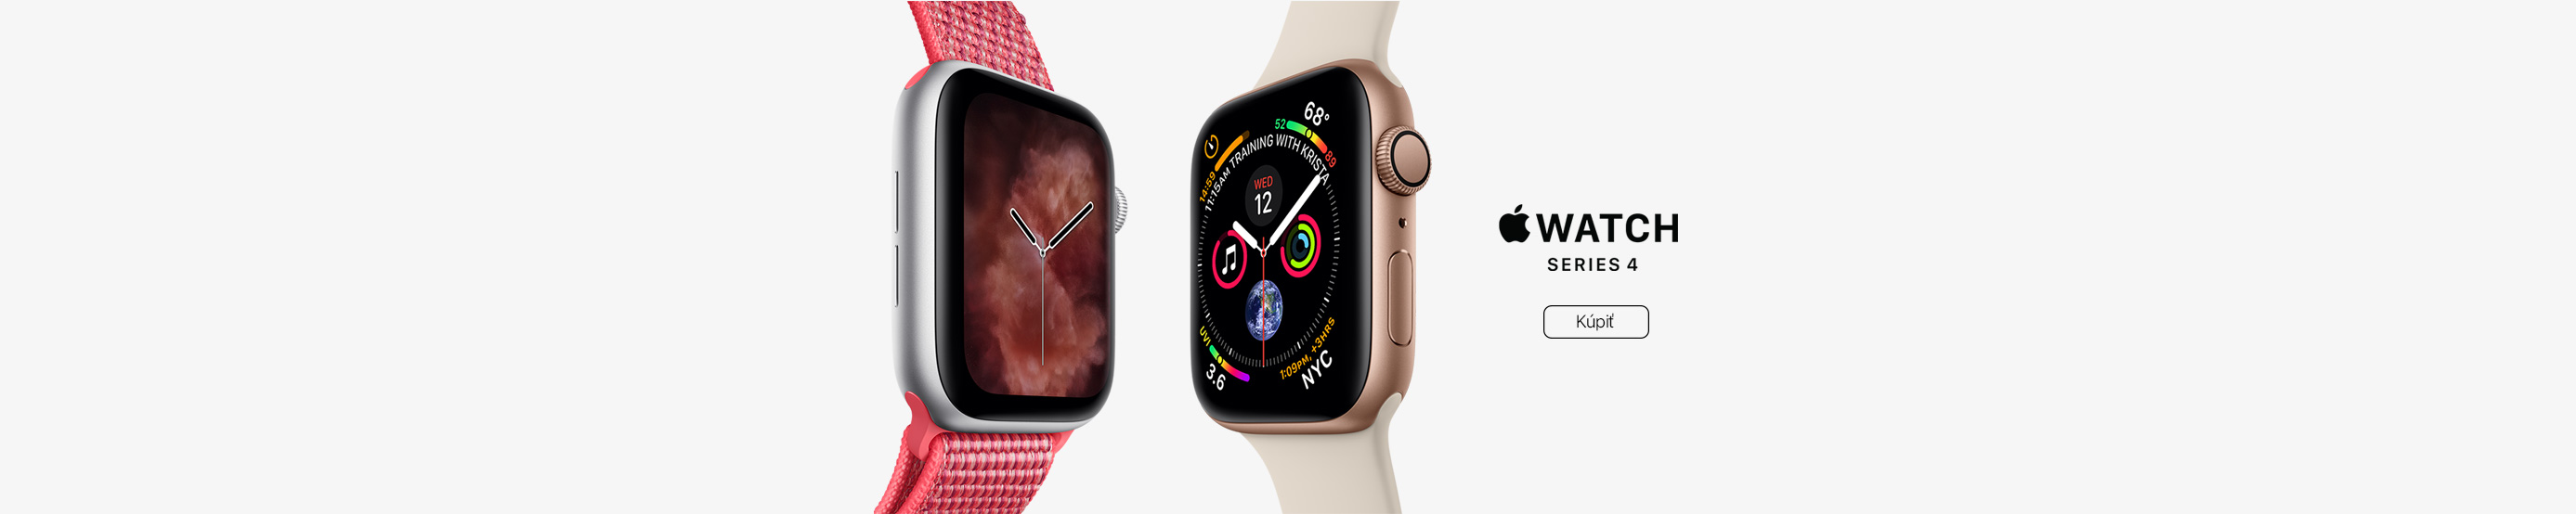 Apple Watch Series 4 už v predaji